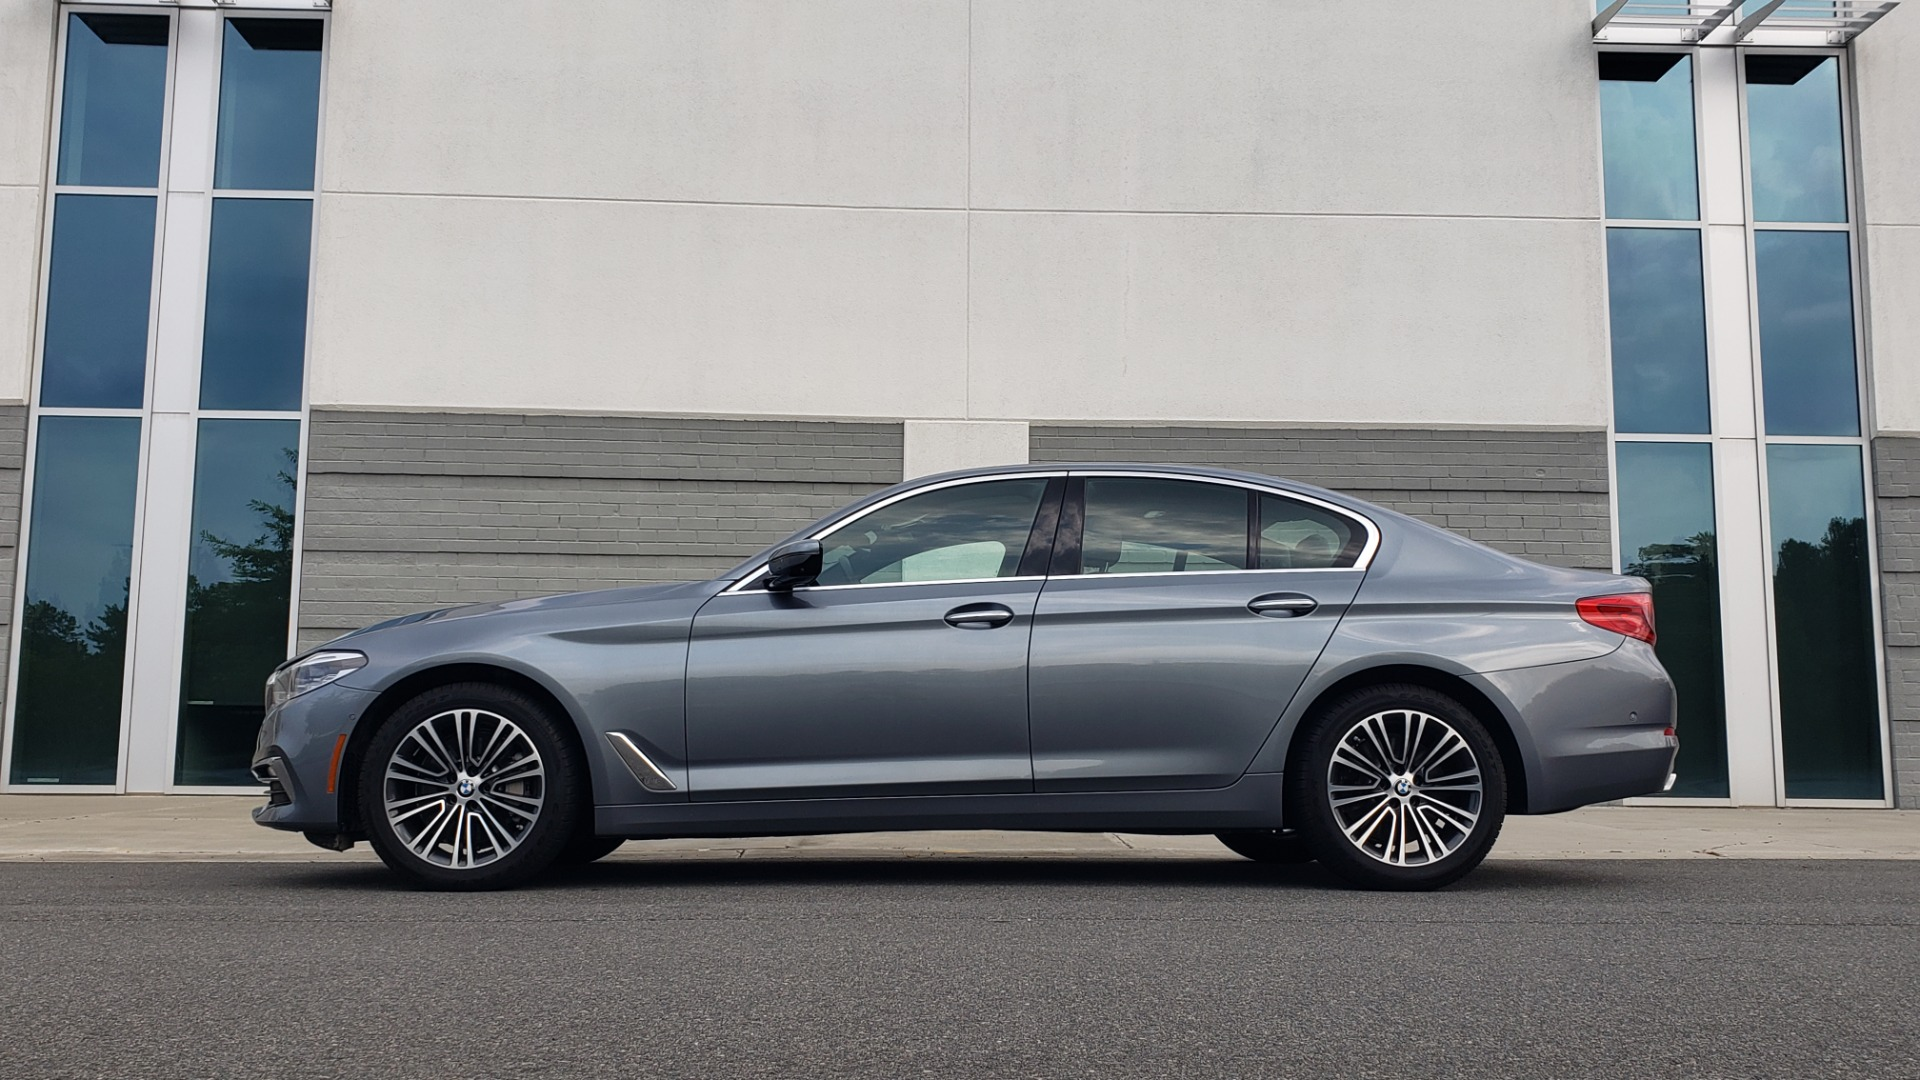 Used 2018 BMW 5 SERIES 540I XDRIVE PREMIUM / EXECUTIVE / LUXURY / H/K SND / REMOTE CONTROL PARKING for sale $40,995 at Formula Imports in Charlotte NC 28227 5